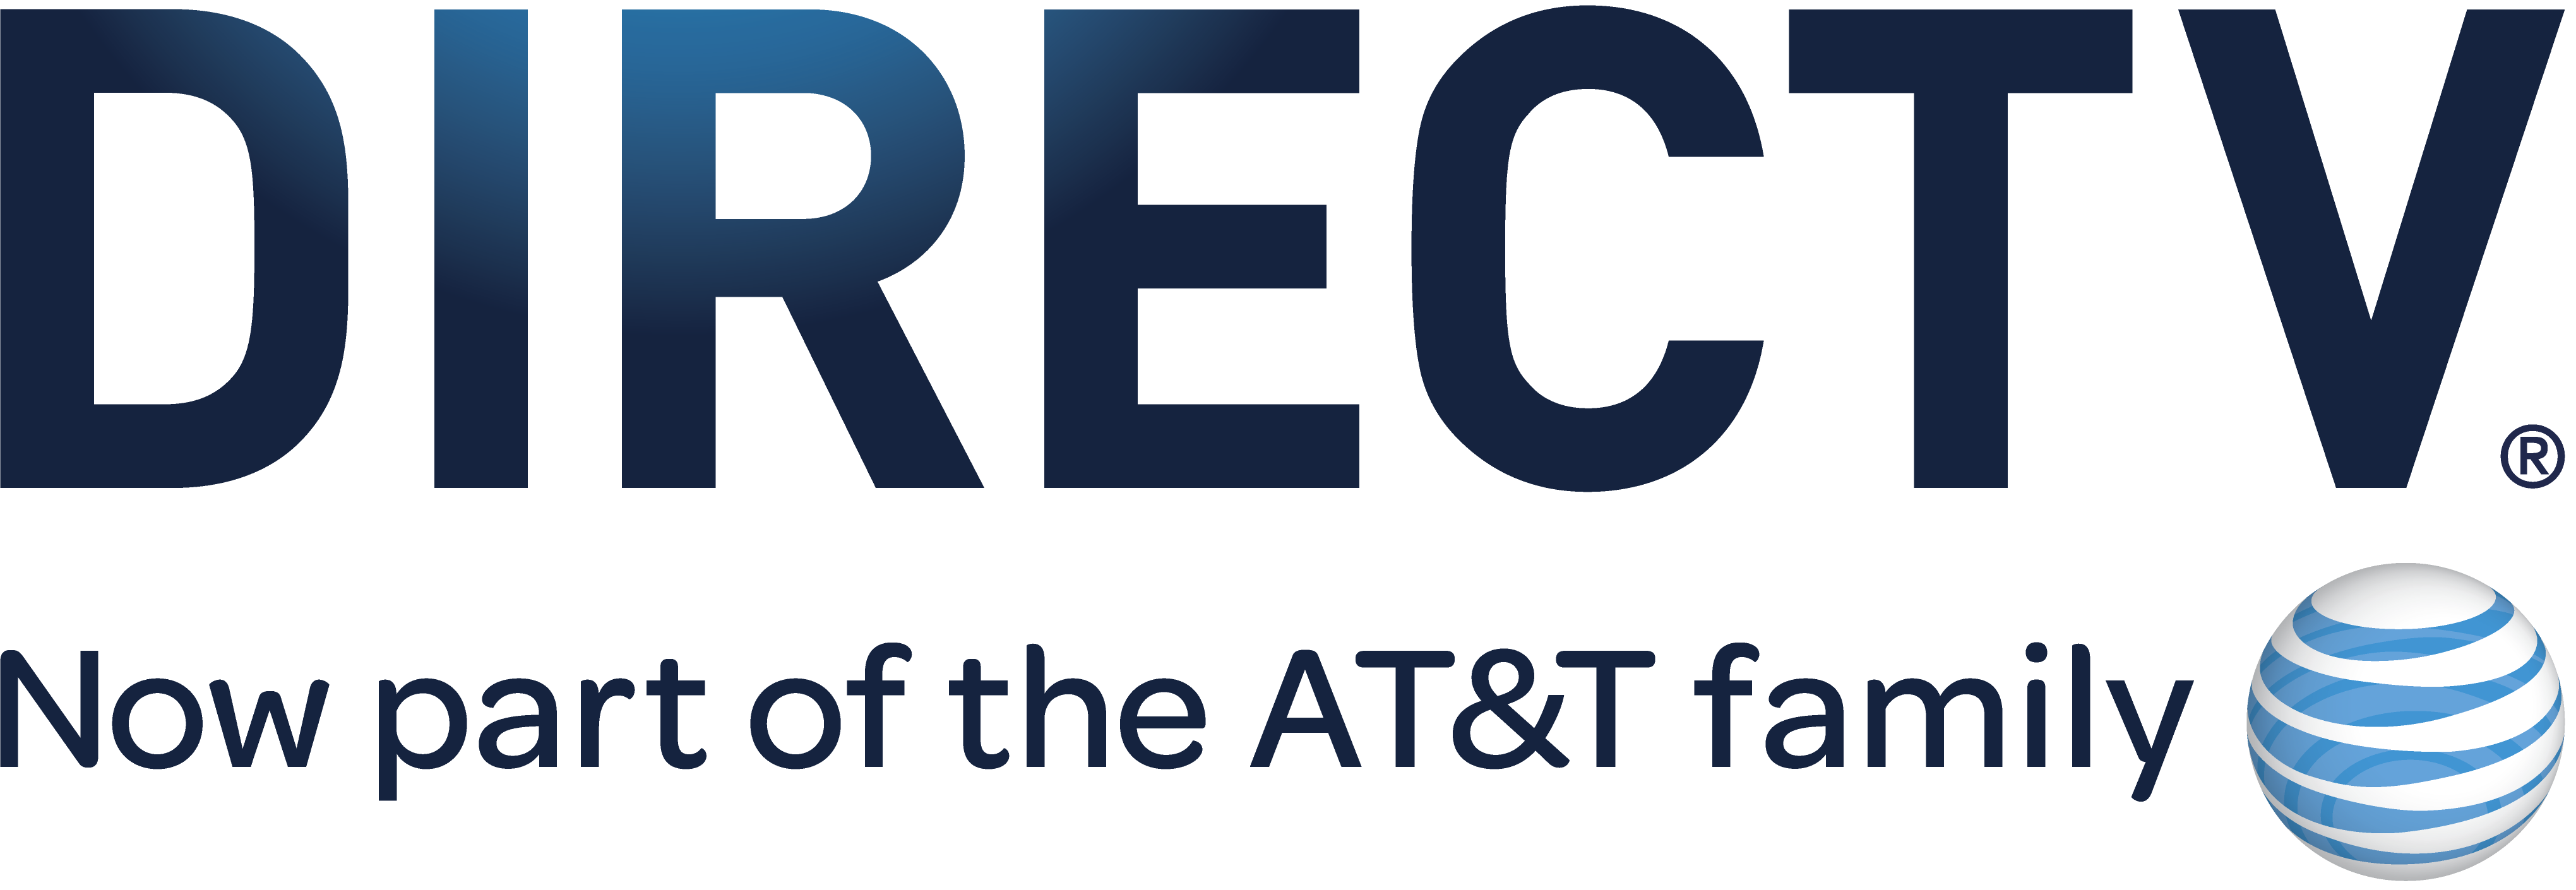 Report Directv Now Is Delayed & Will Not Be Released. National Student Loan Database. Plumber In Las Vegas Nv Uk Web Design Company. Esl Certification In Texas Cheap Tv Services. Locksmith In Anaheim Ca Open A Line Of Credit